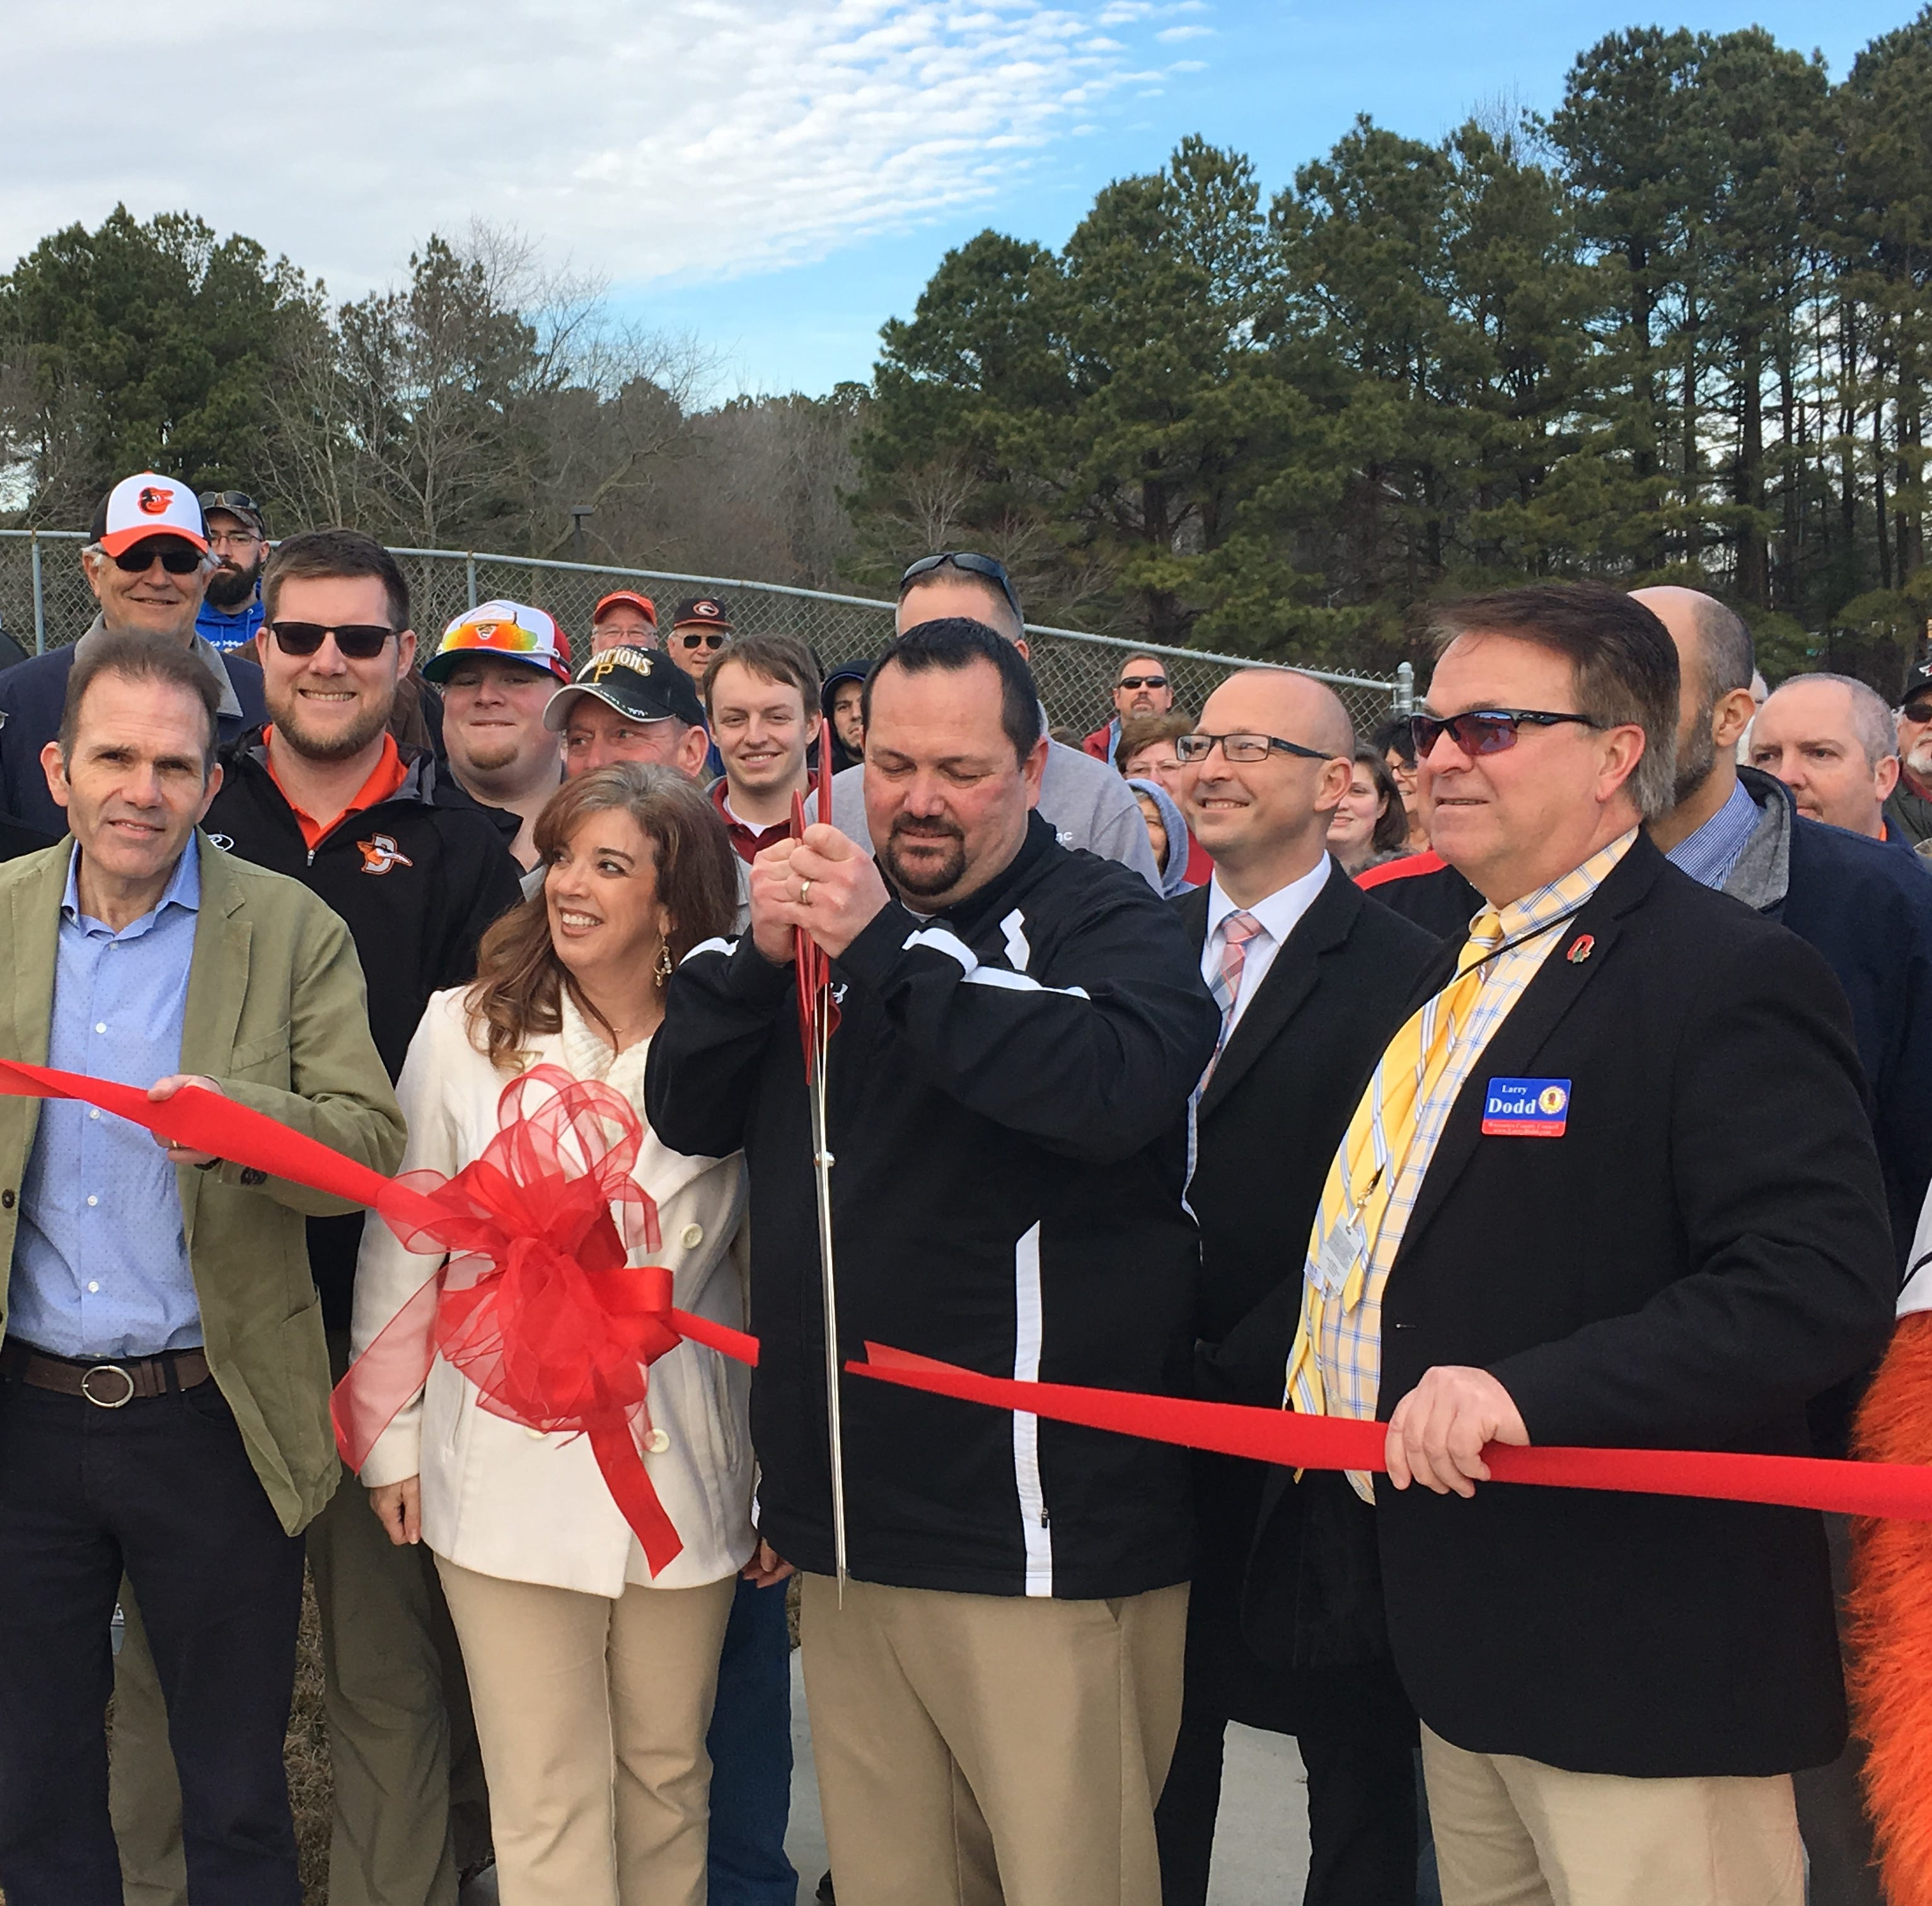 Shorebirds open 360-degree deck at Perdue Stadium